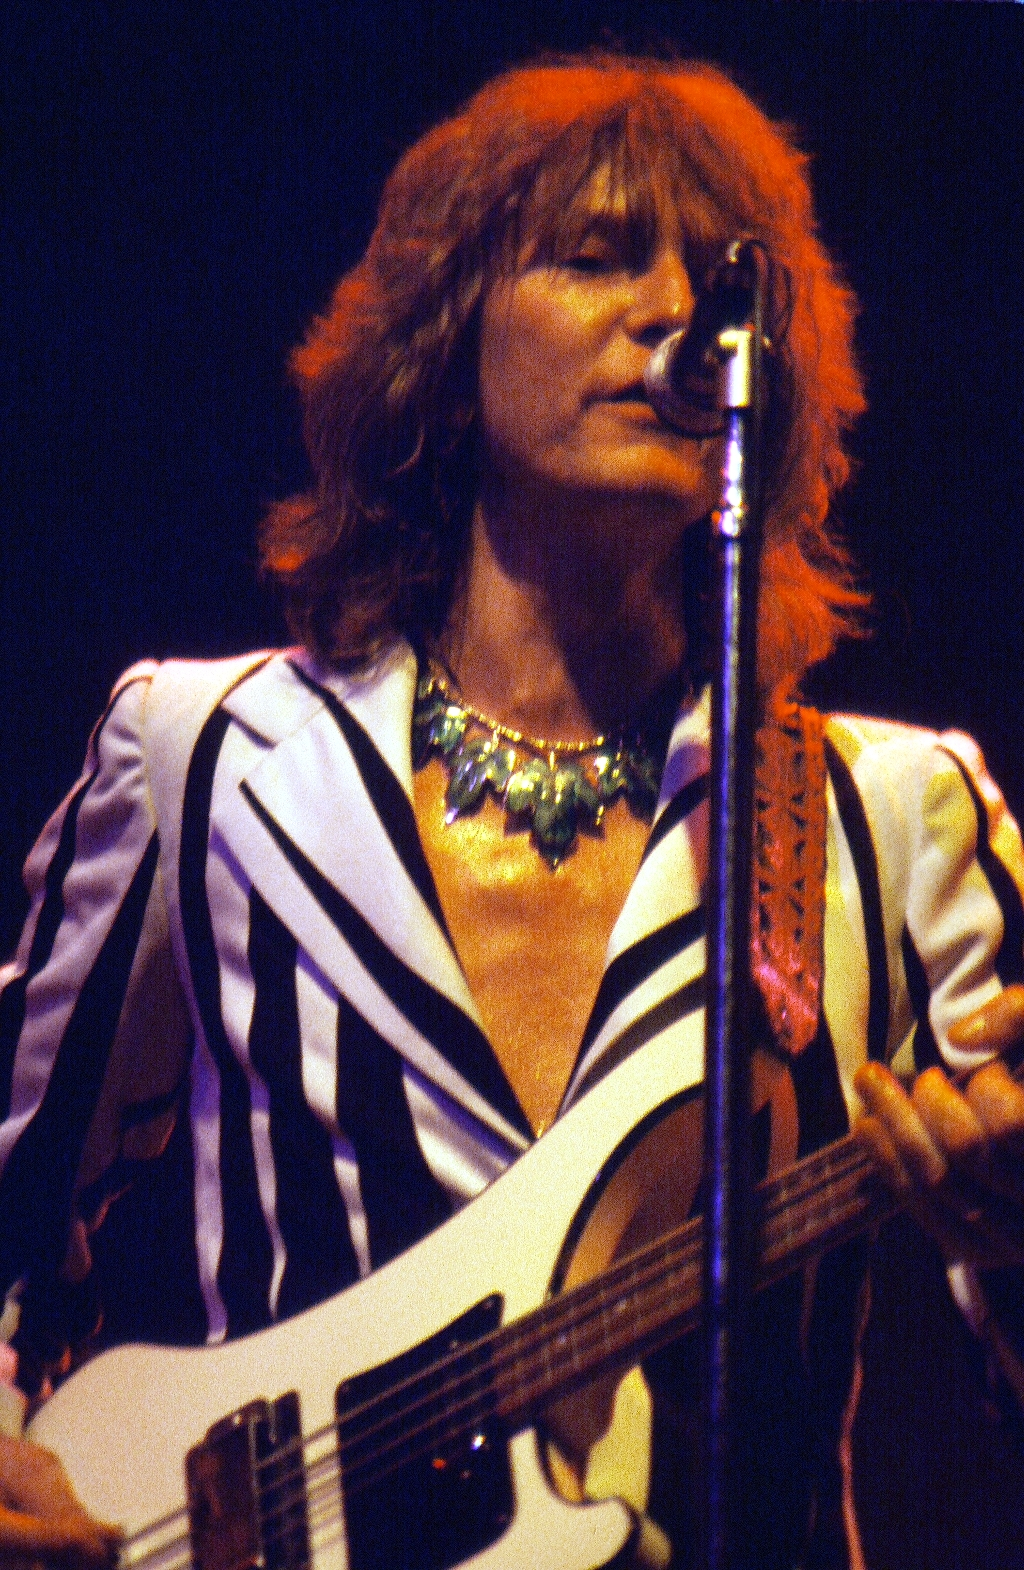 how tall is chris squire